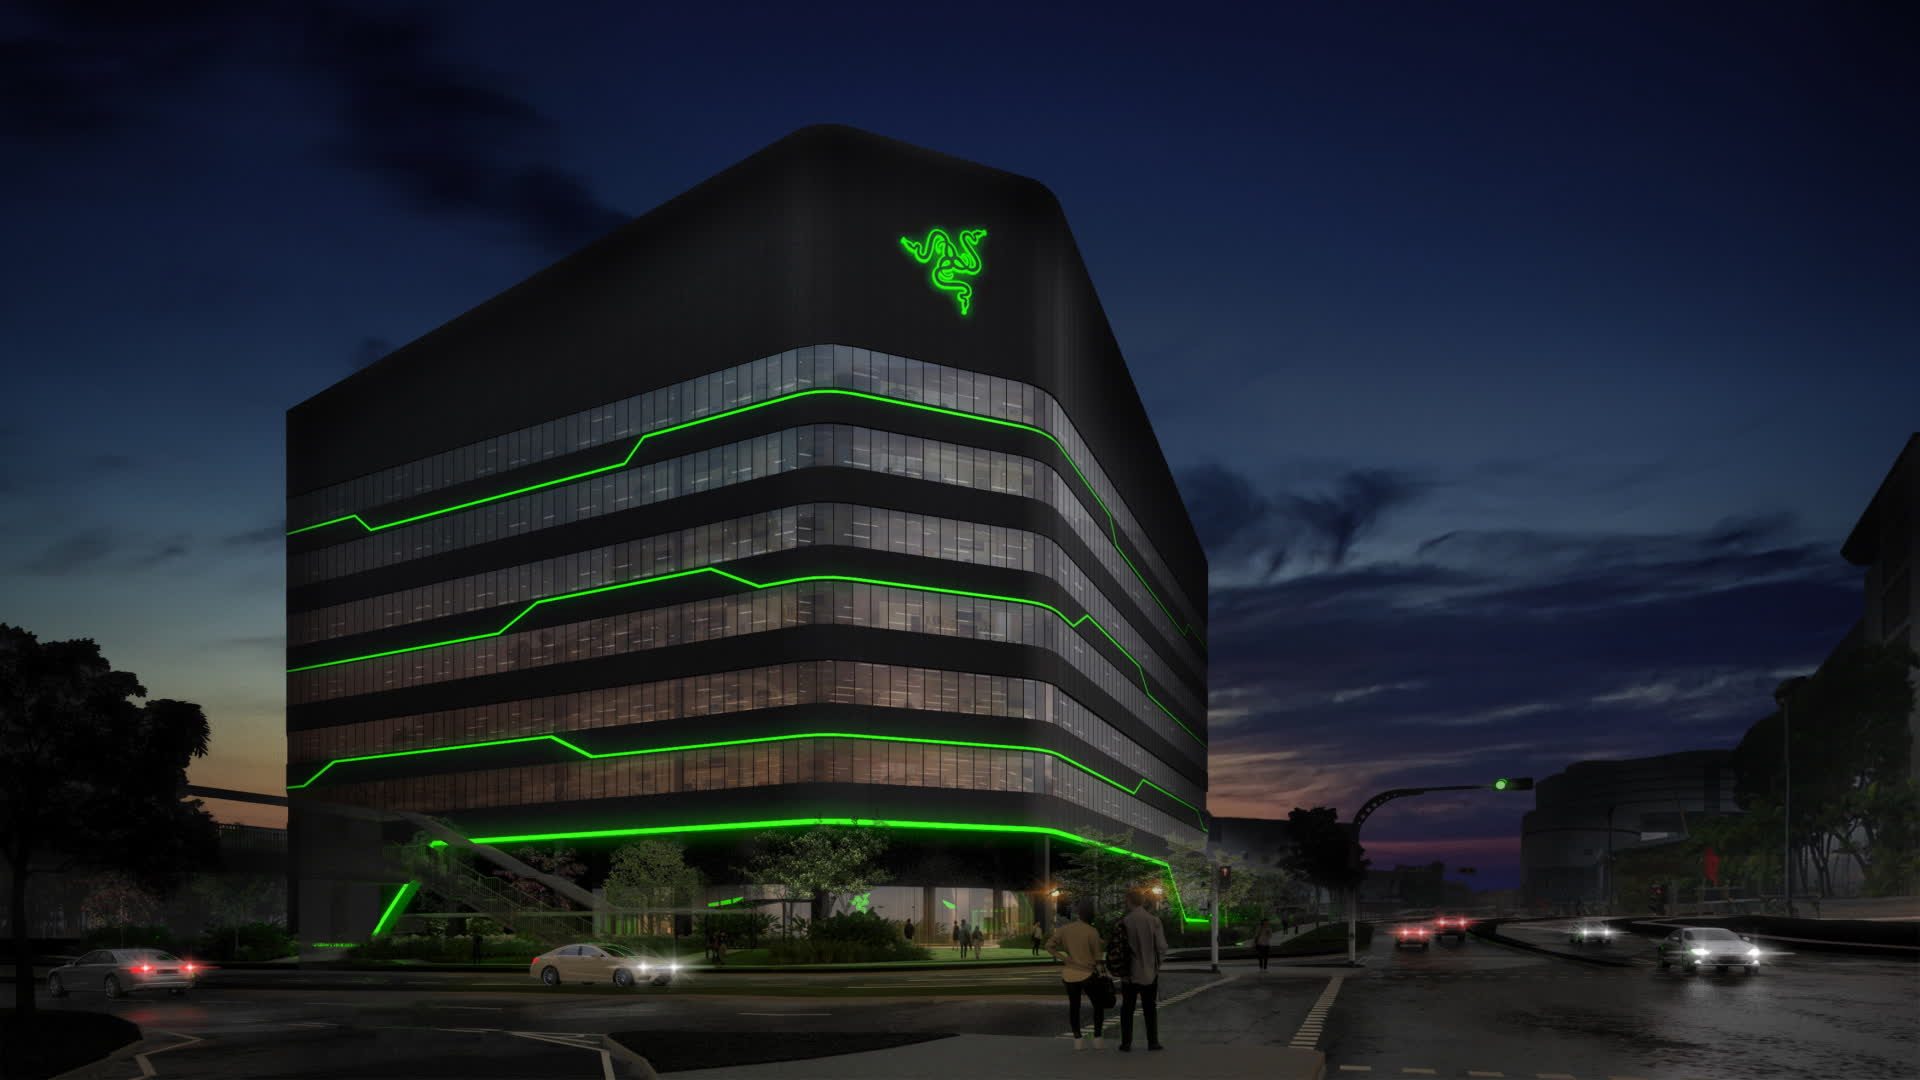 Razer commits to sustainability, will use 100 percent renewable energy across its offices by 2025